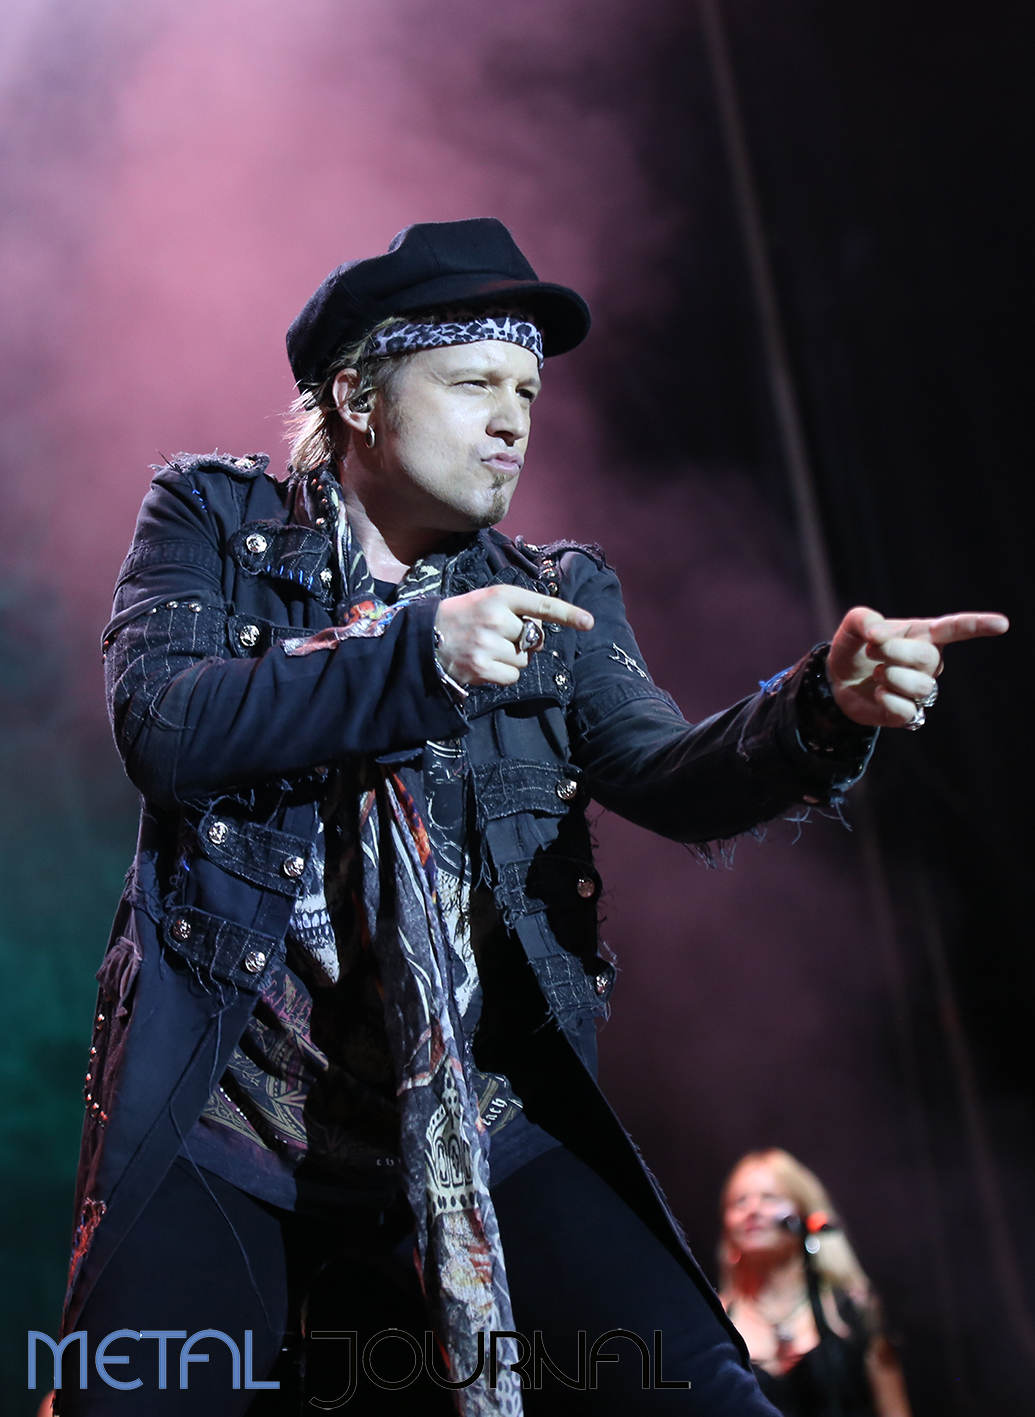 avantasia- leyendas del rock 2019 metal journal pic 15